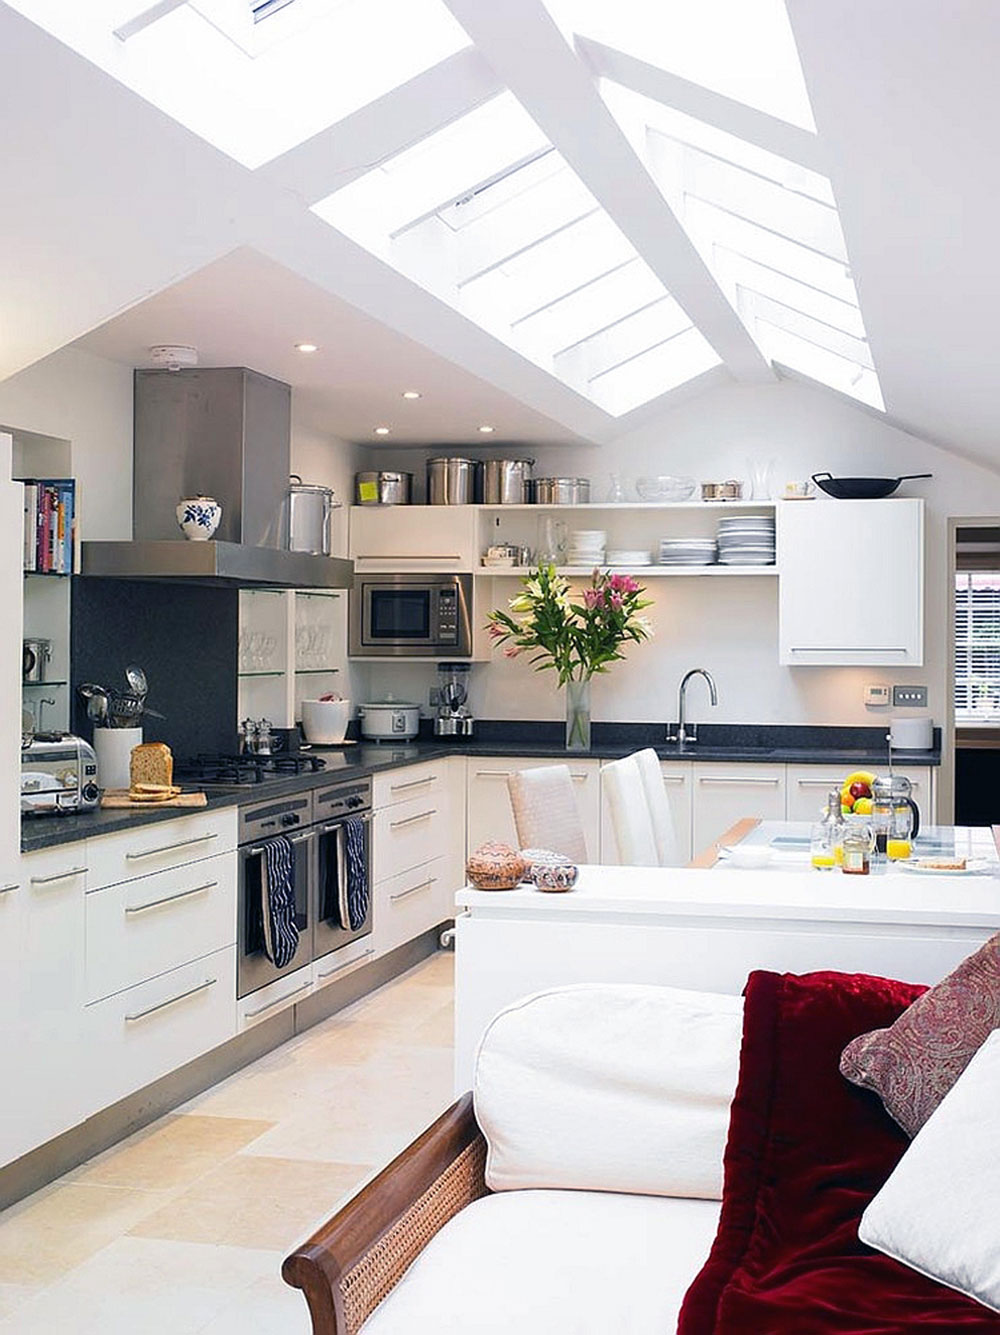 Awesome Kitchens With Skylights For More Natural Light 2 Kitchens Part 8